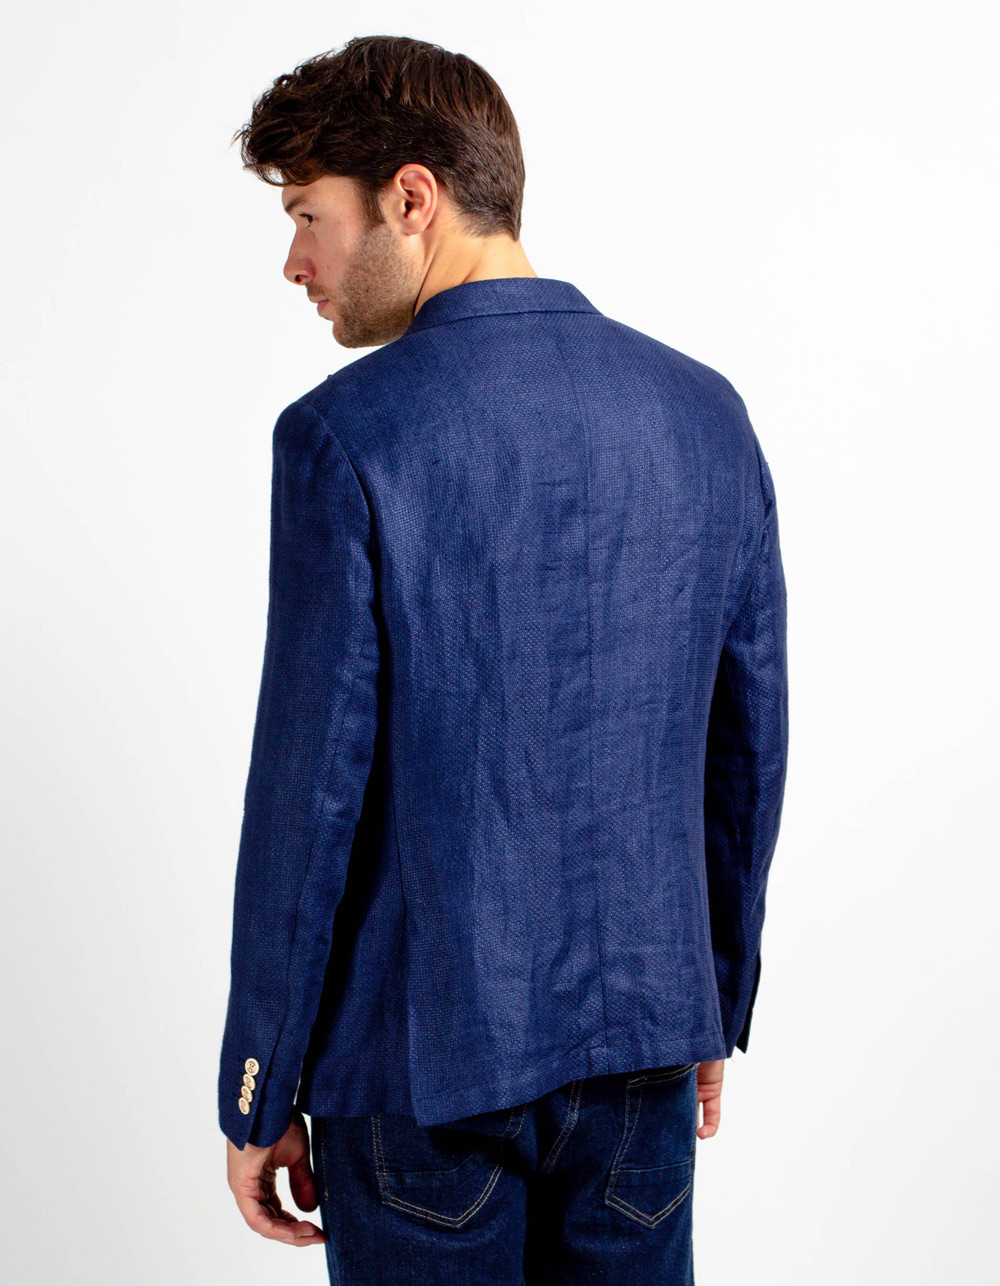 Linen blazer - Backside